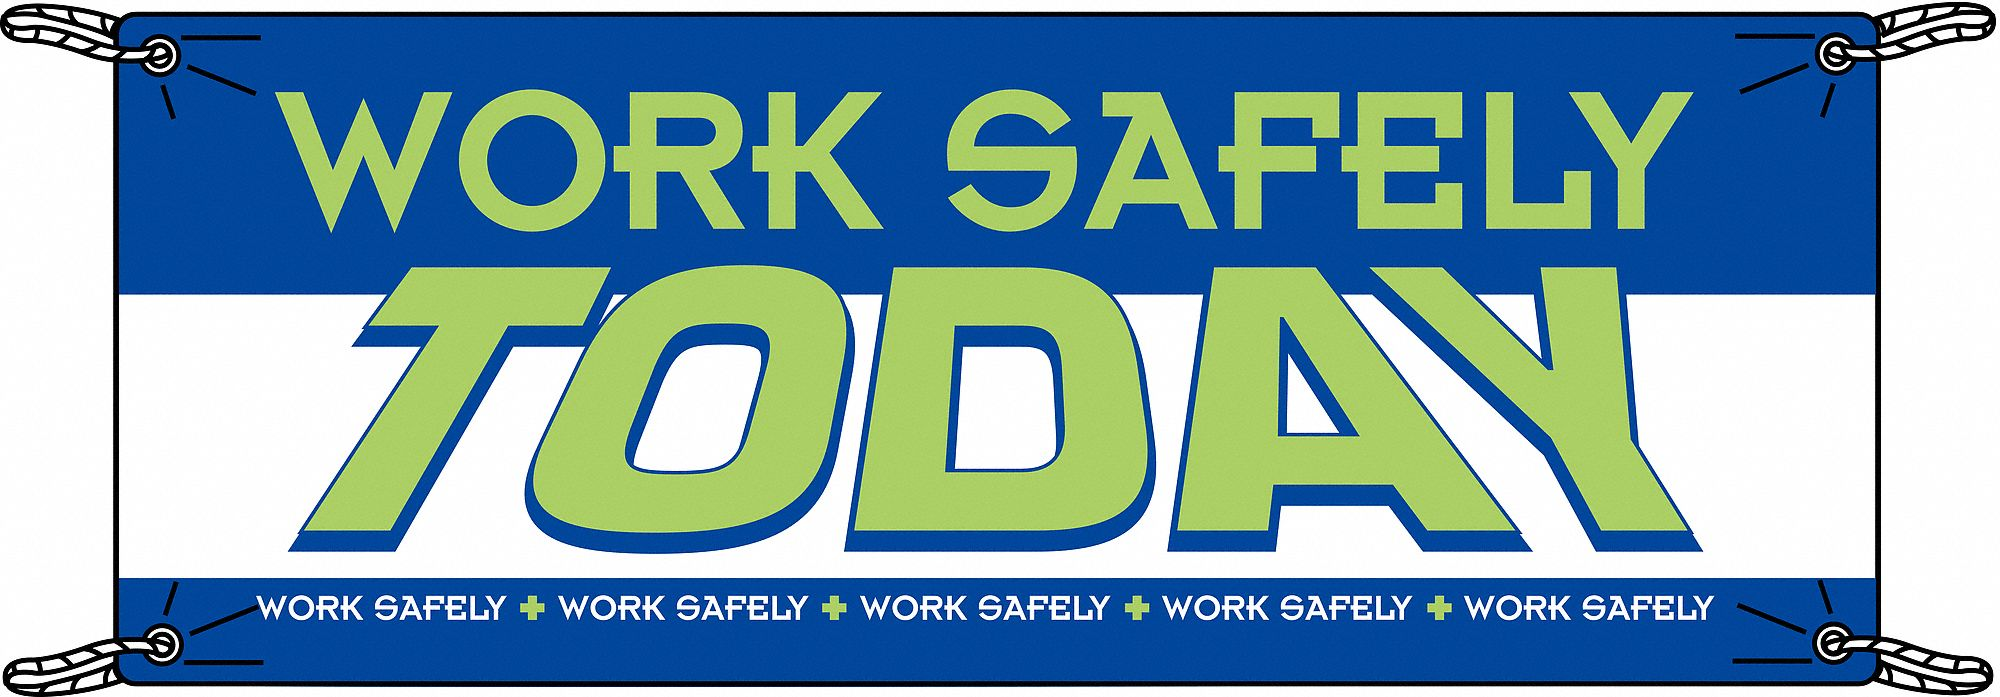 Safety Banner,  Safety Banner Legend Work Safely Today,  48 in x 120 in,  English